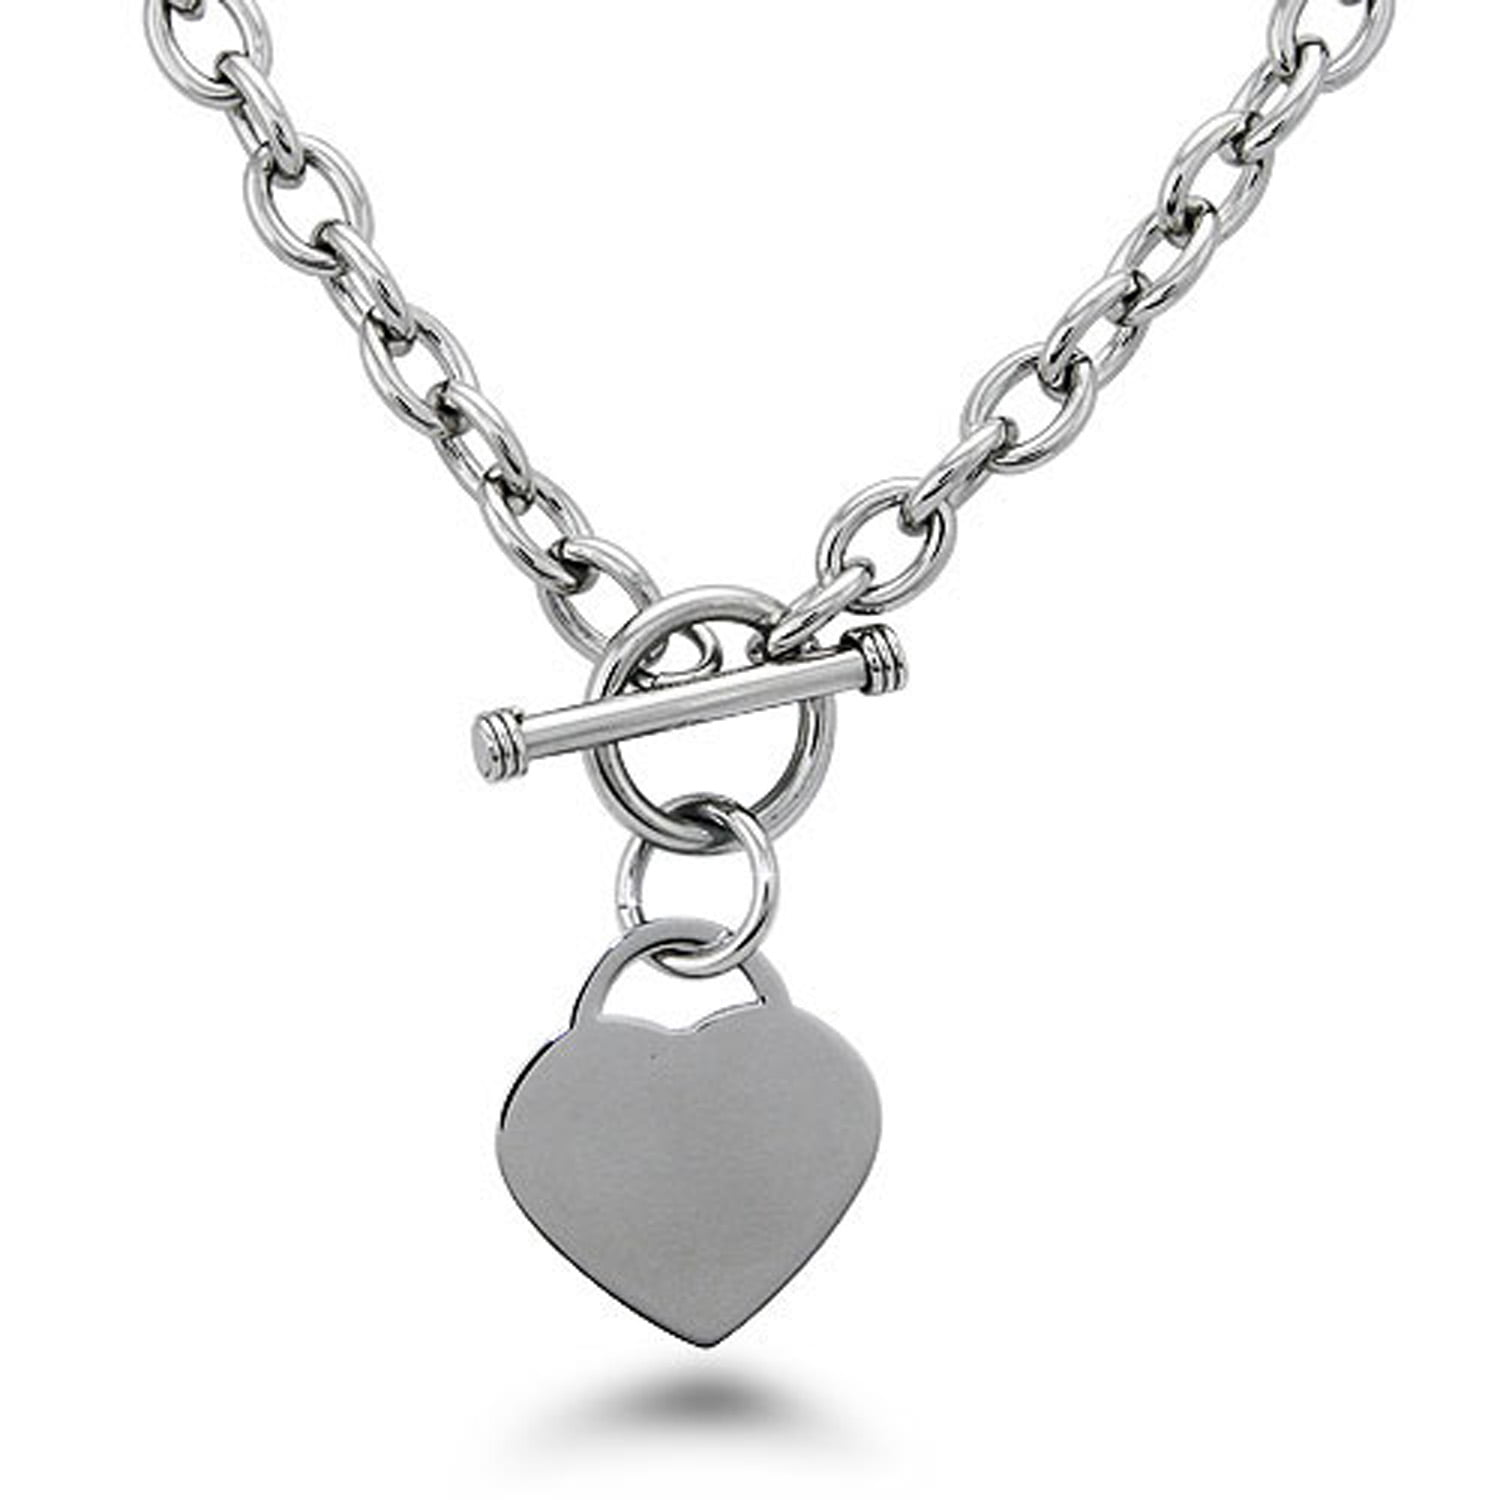 Tioneer Stainless Steel Love Volleyball Heart Floating Heart Tag Charm Pendant Necklace